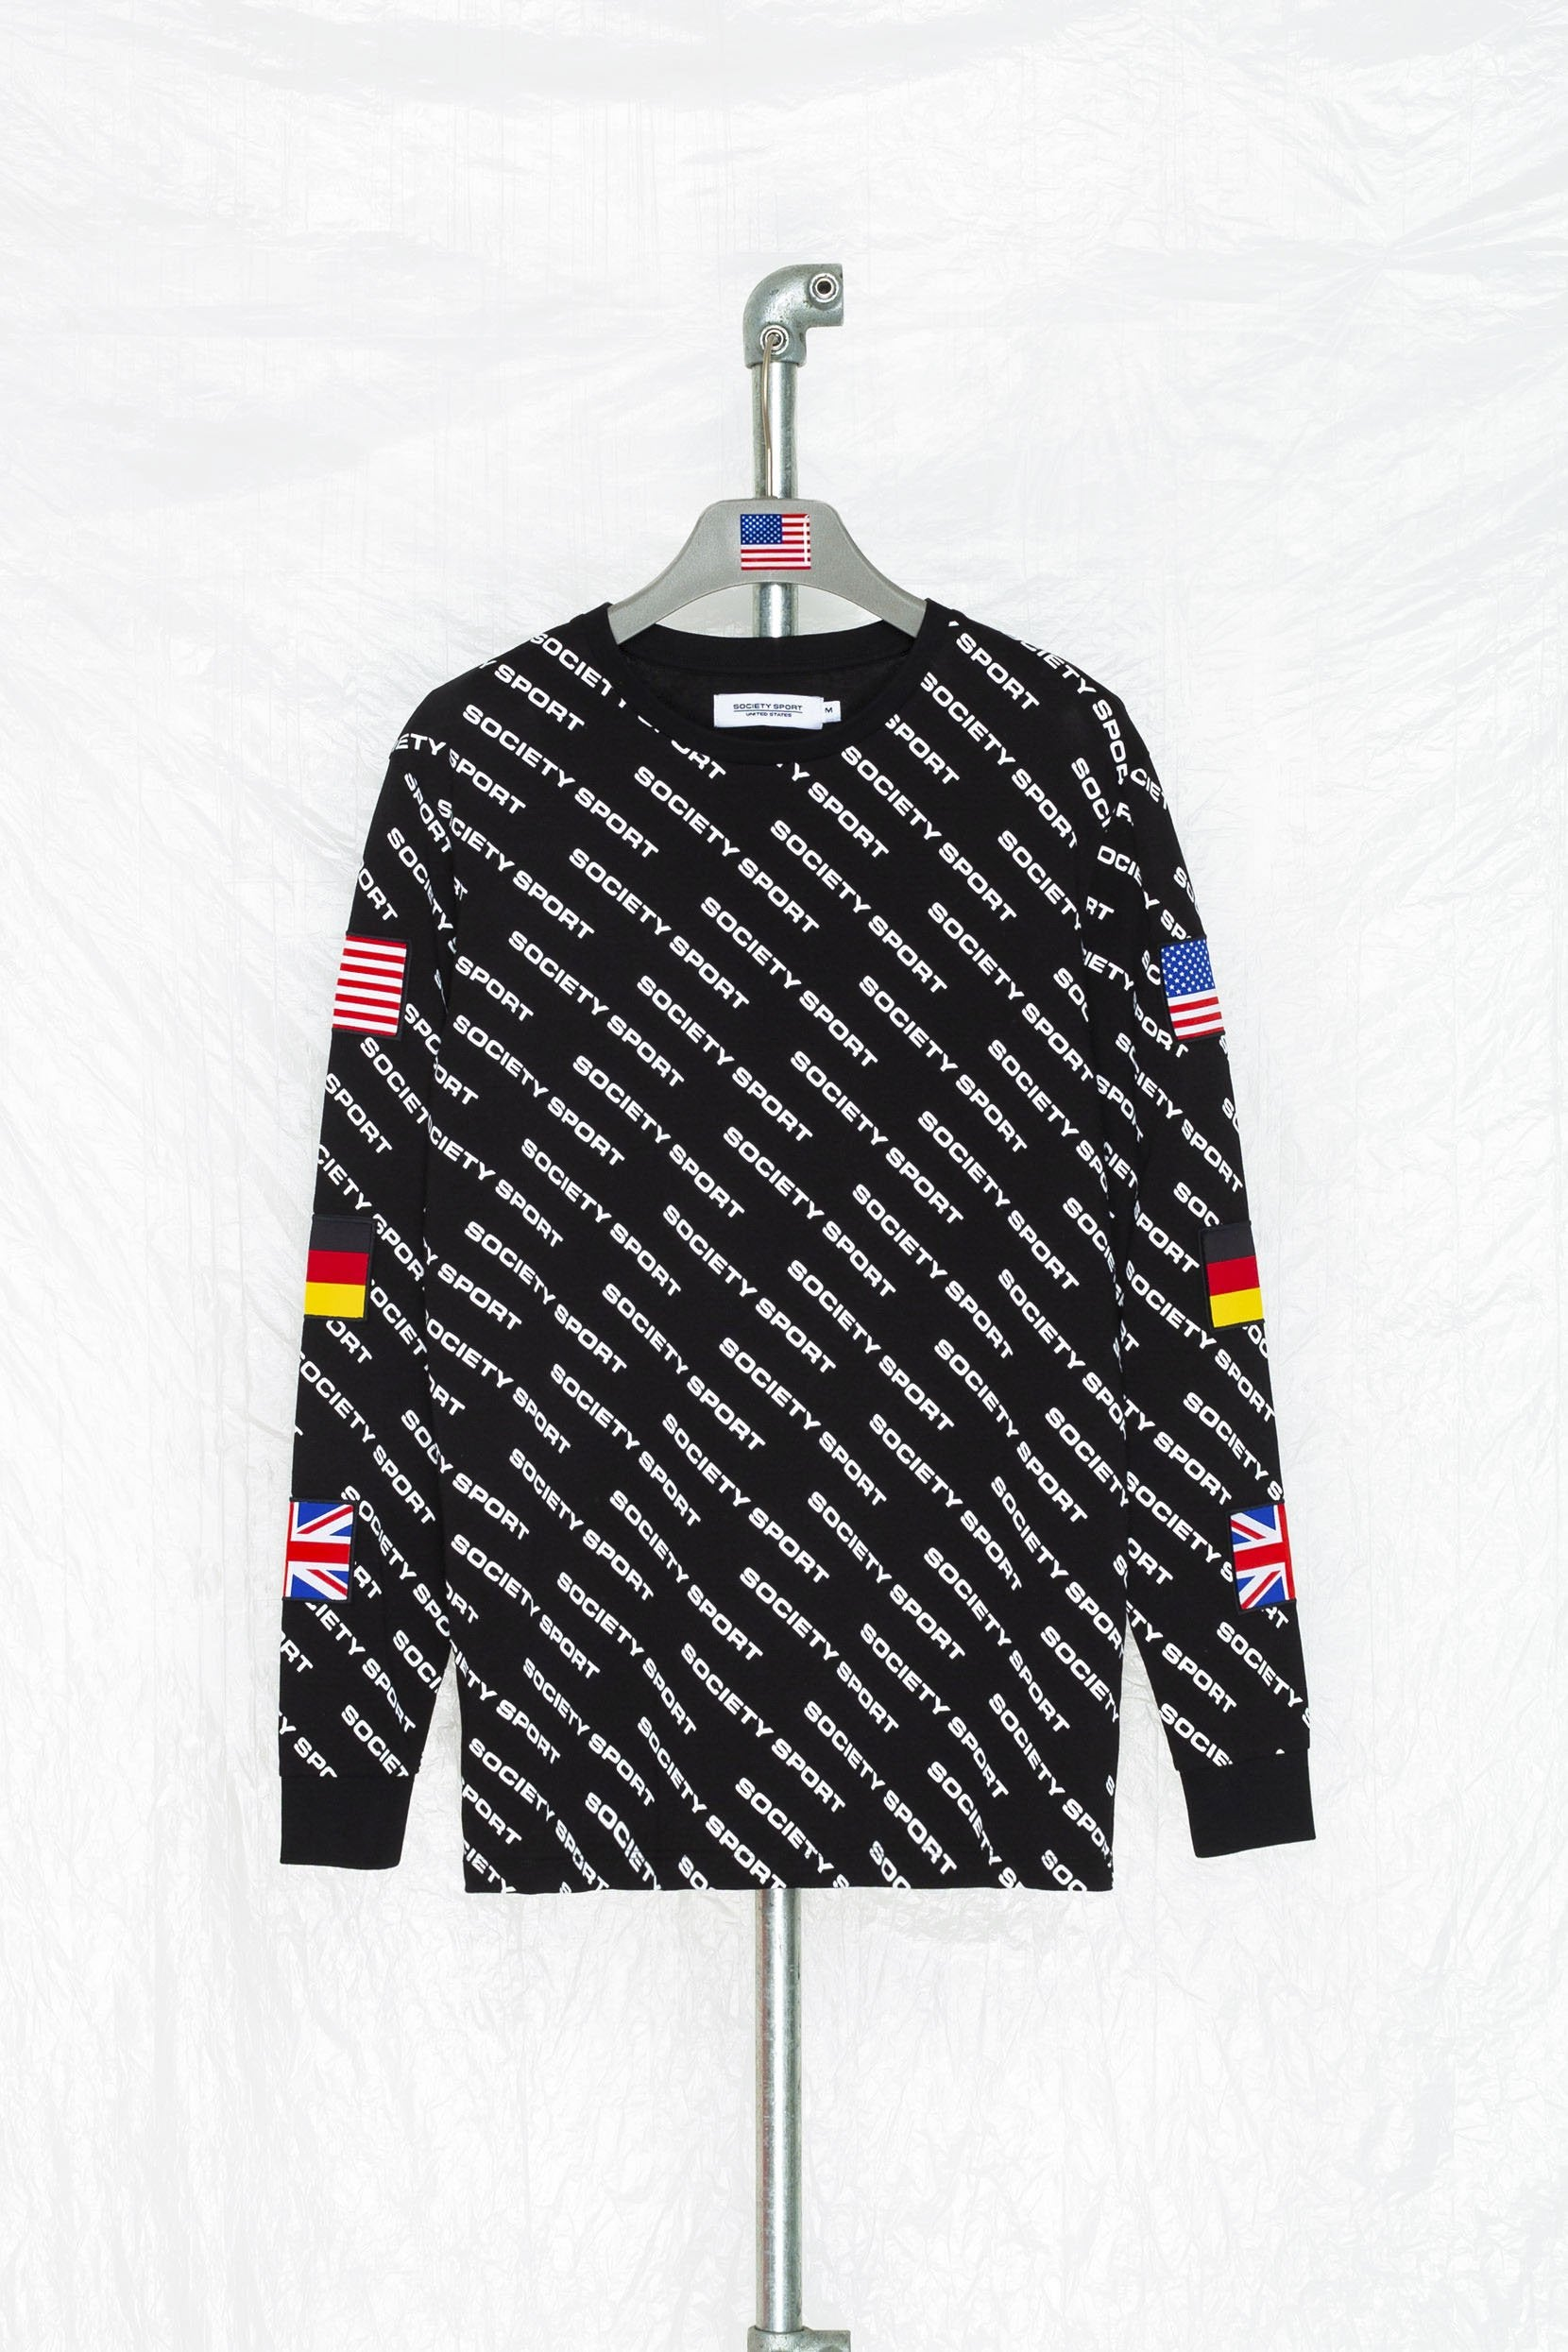 Hype Society Sport All Over Logo Black Long Sleeve T-Shirt | Size Large